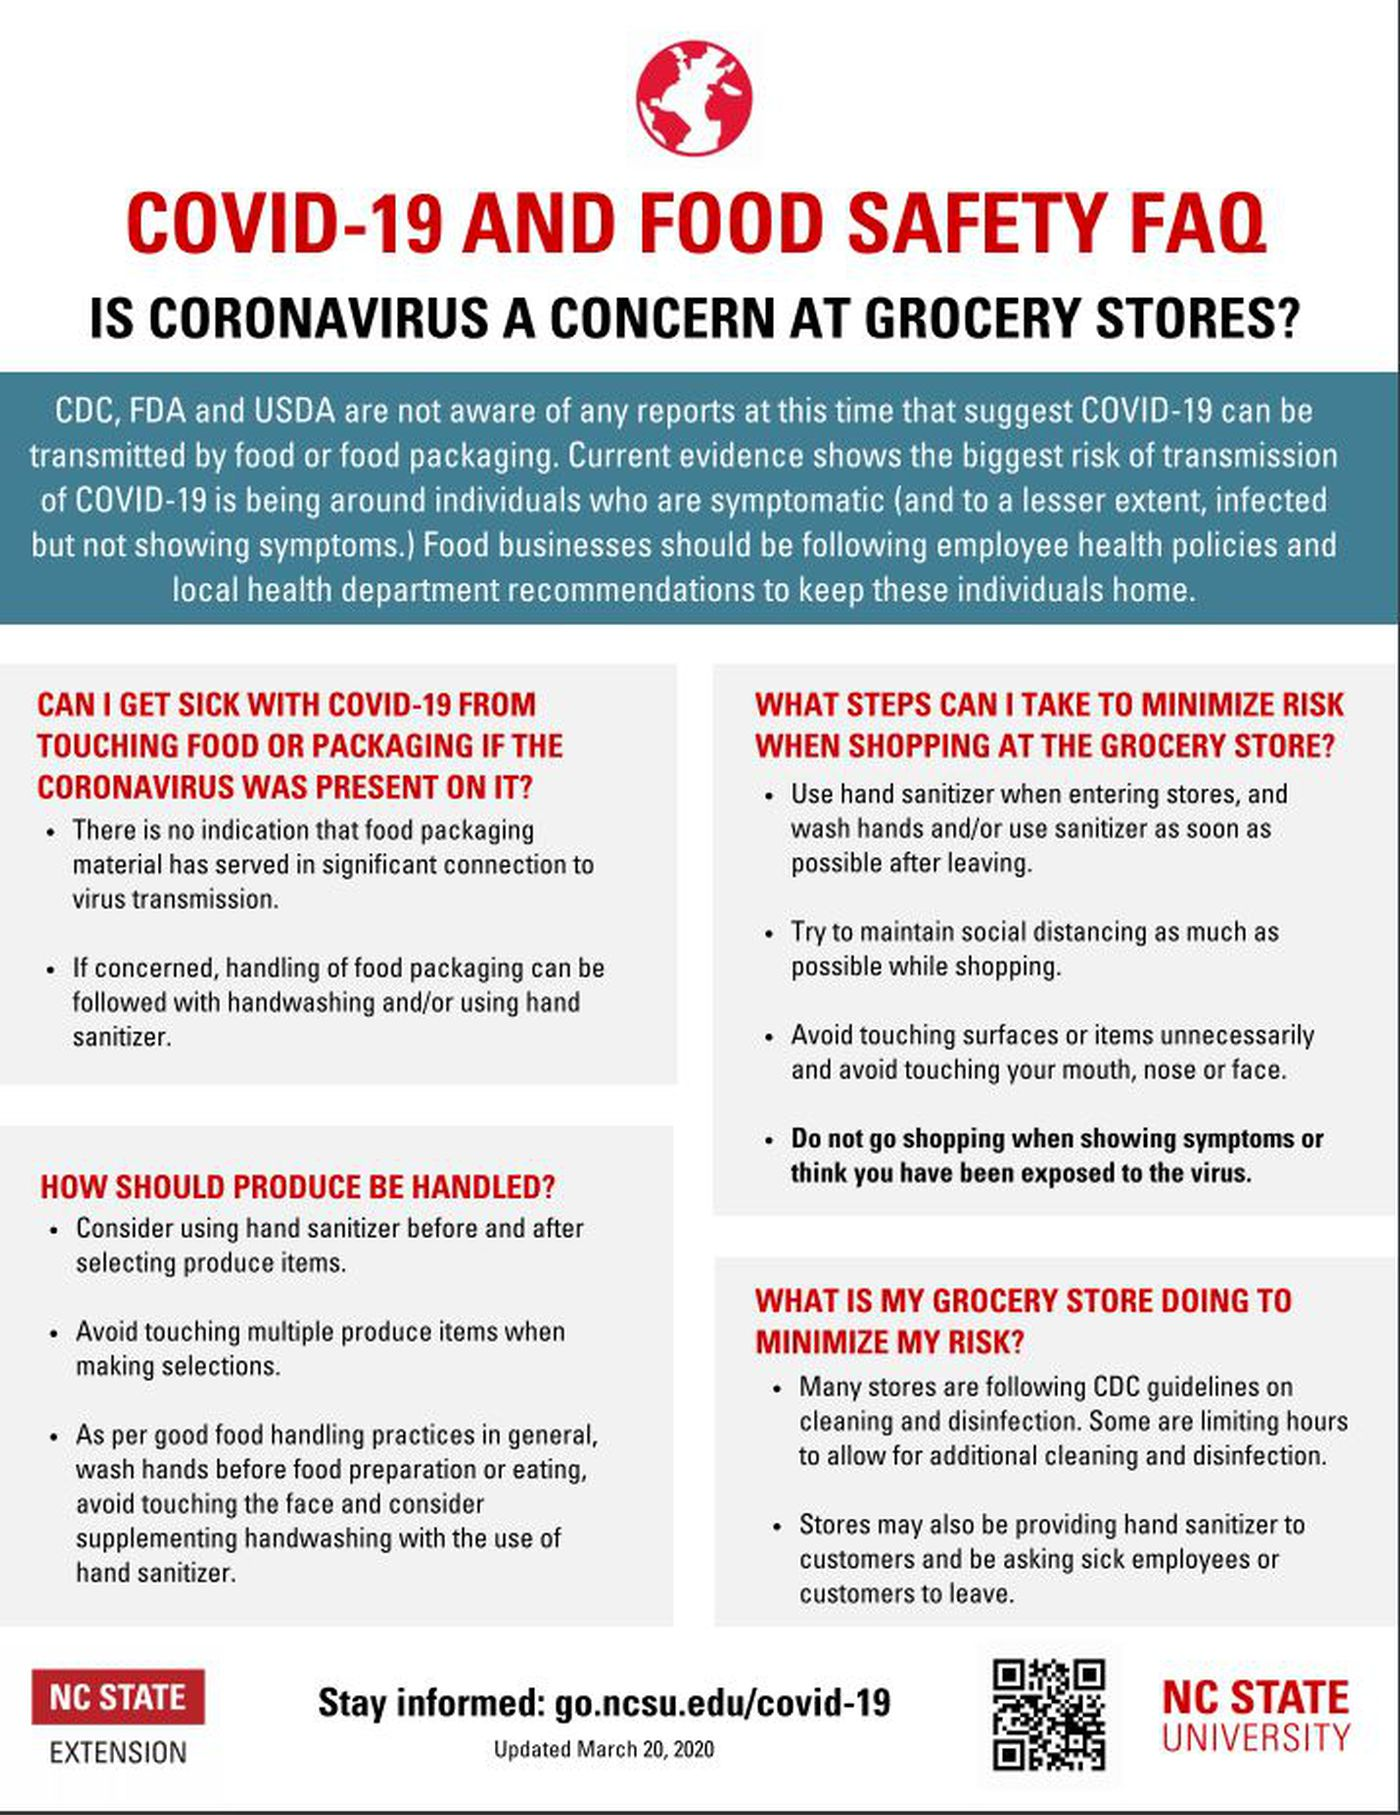 Is Coronavirus a concern at Grocery Stores